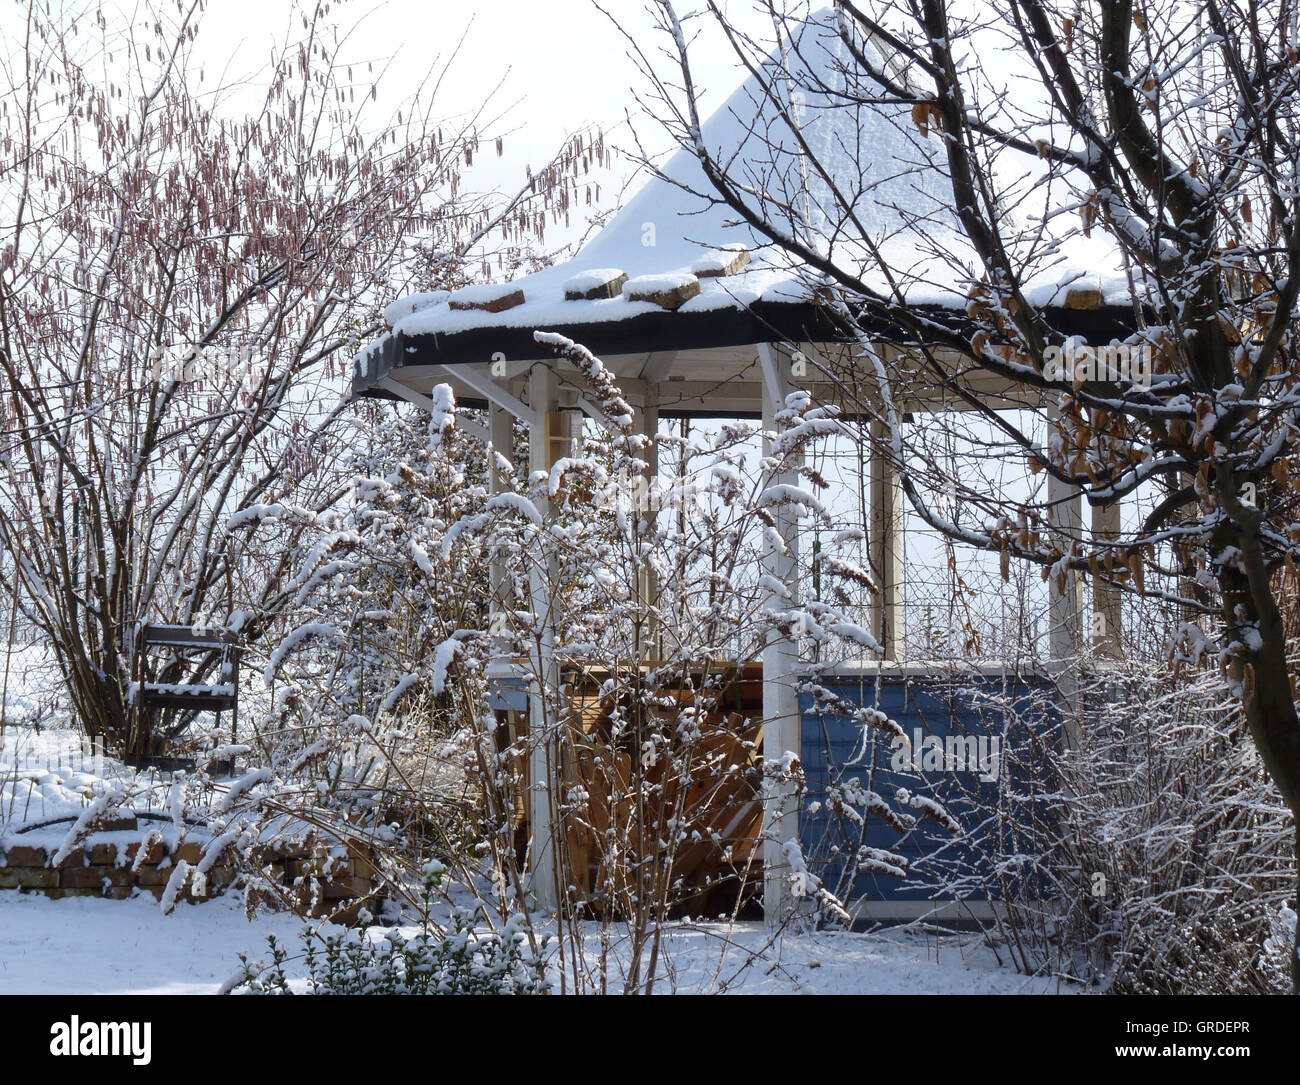 Wintry Garden Idyll With Pavilion - Stock Image